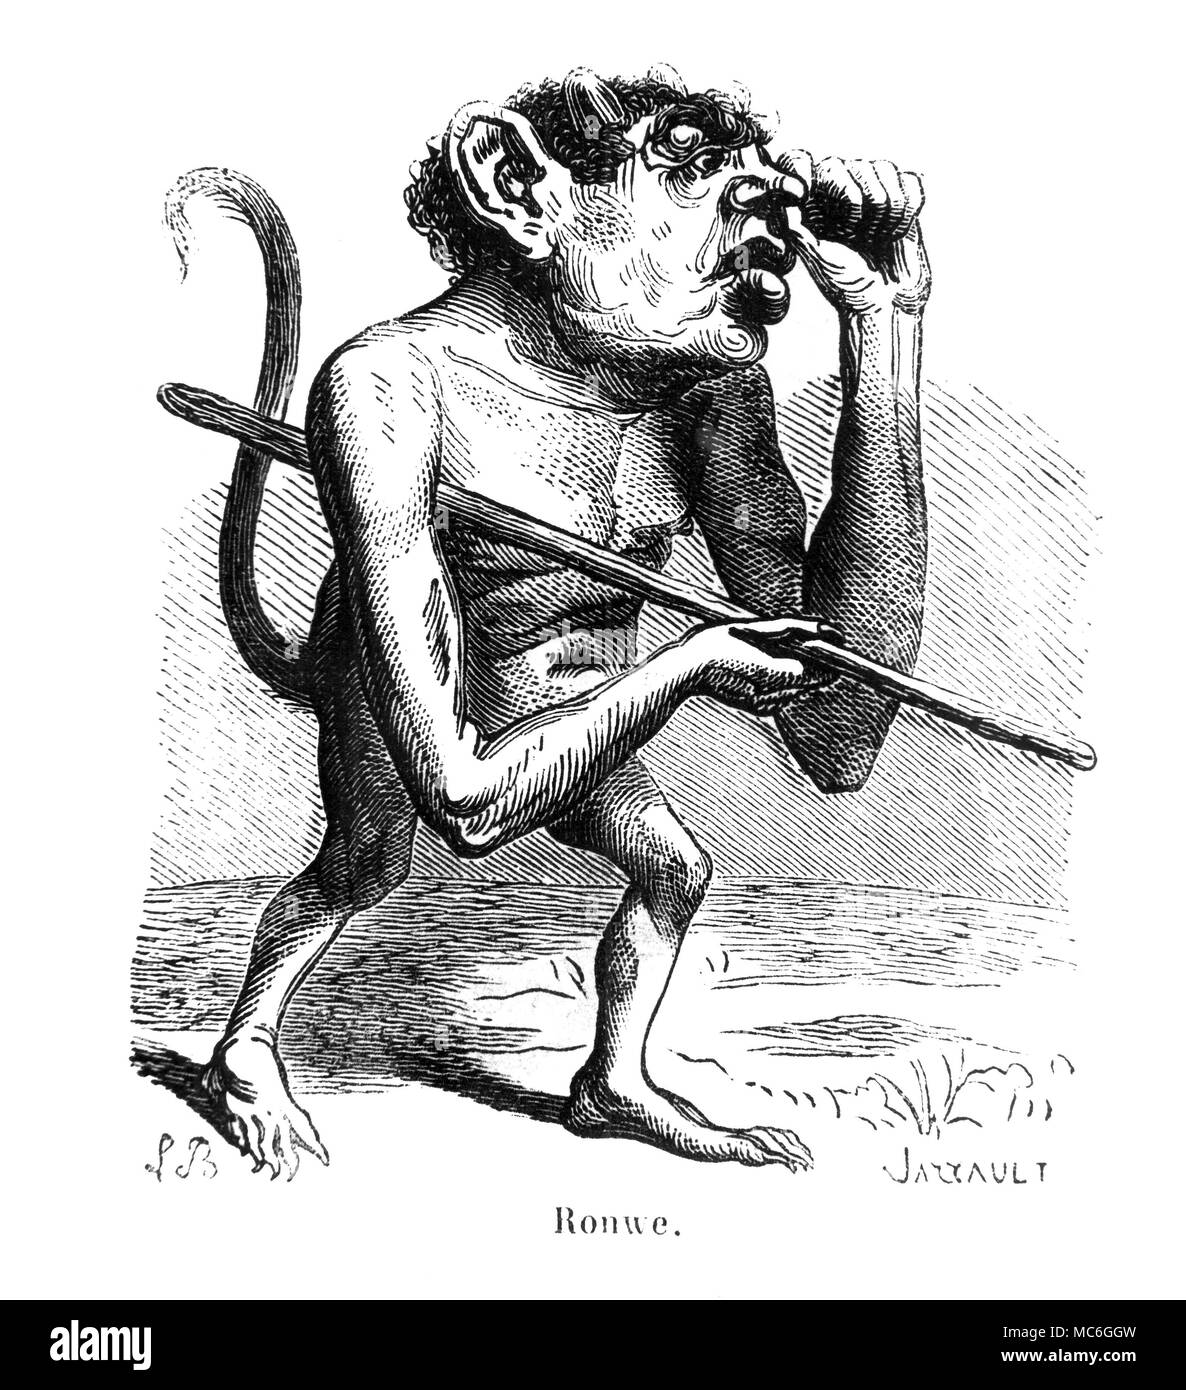 DEMONS - RONWE A Marquis of Hell, who appears in a monstrous humanoid form.  When conjured, he has the power to grand knowledge of all languages, and to offer the conjurer the respect and admiration of all the world. His picture is from the 1863 edition of Collin de Plancy, Dictionnaire Infernal. - Stock Image